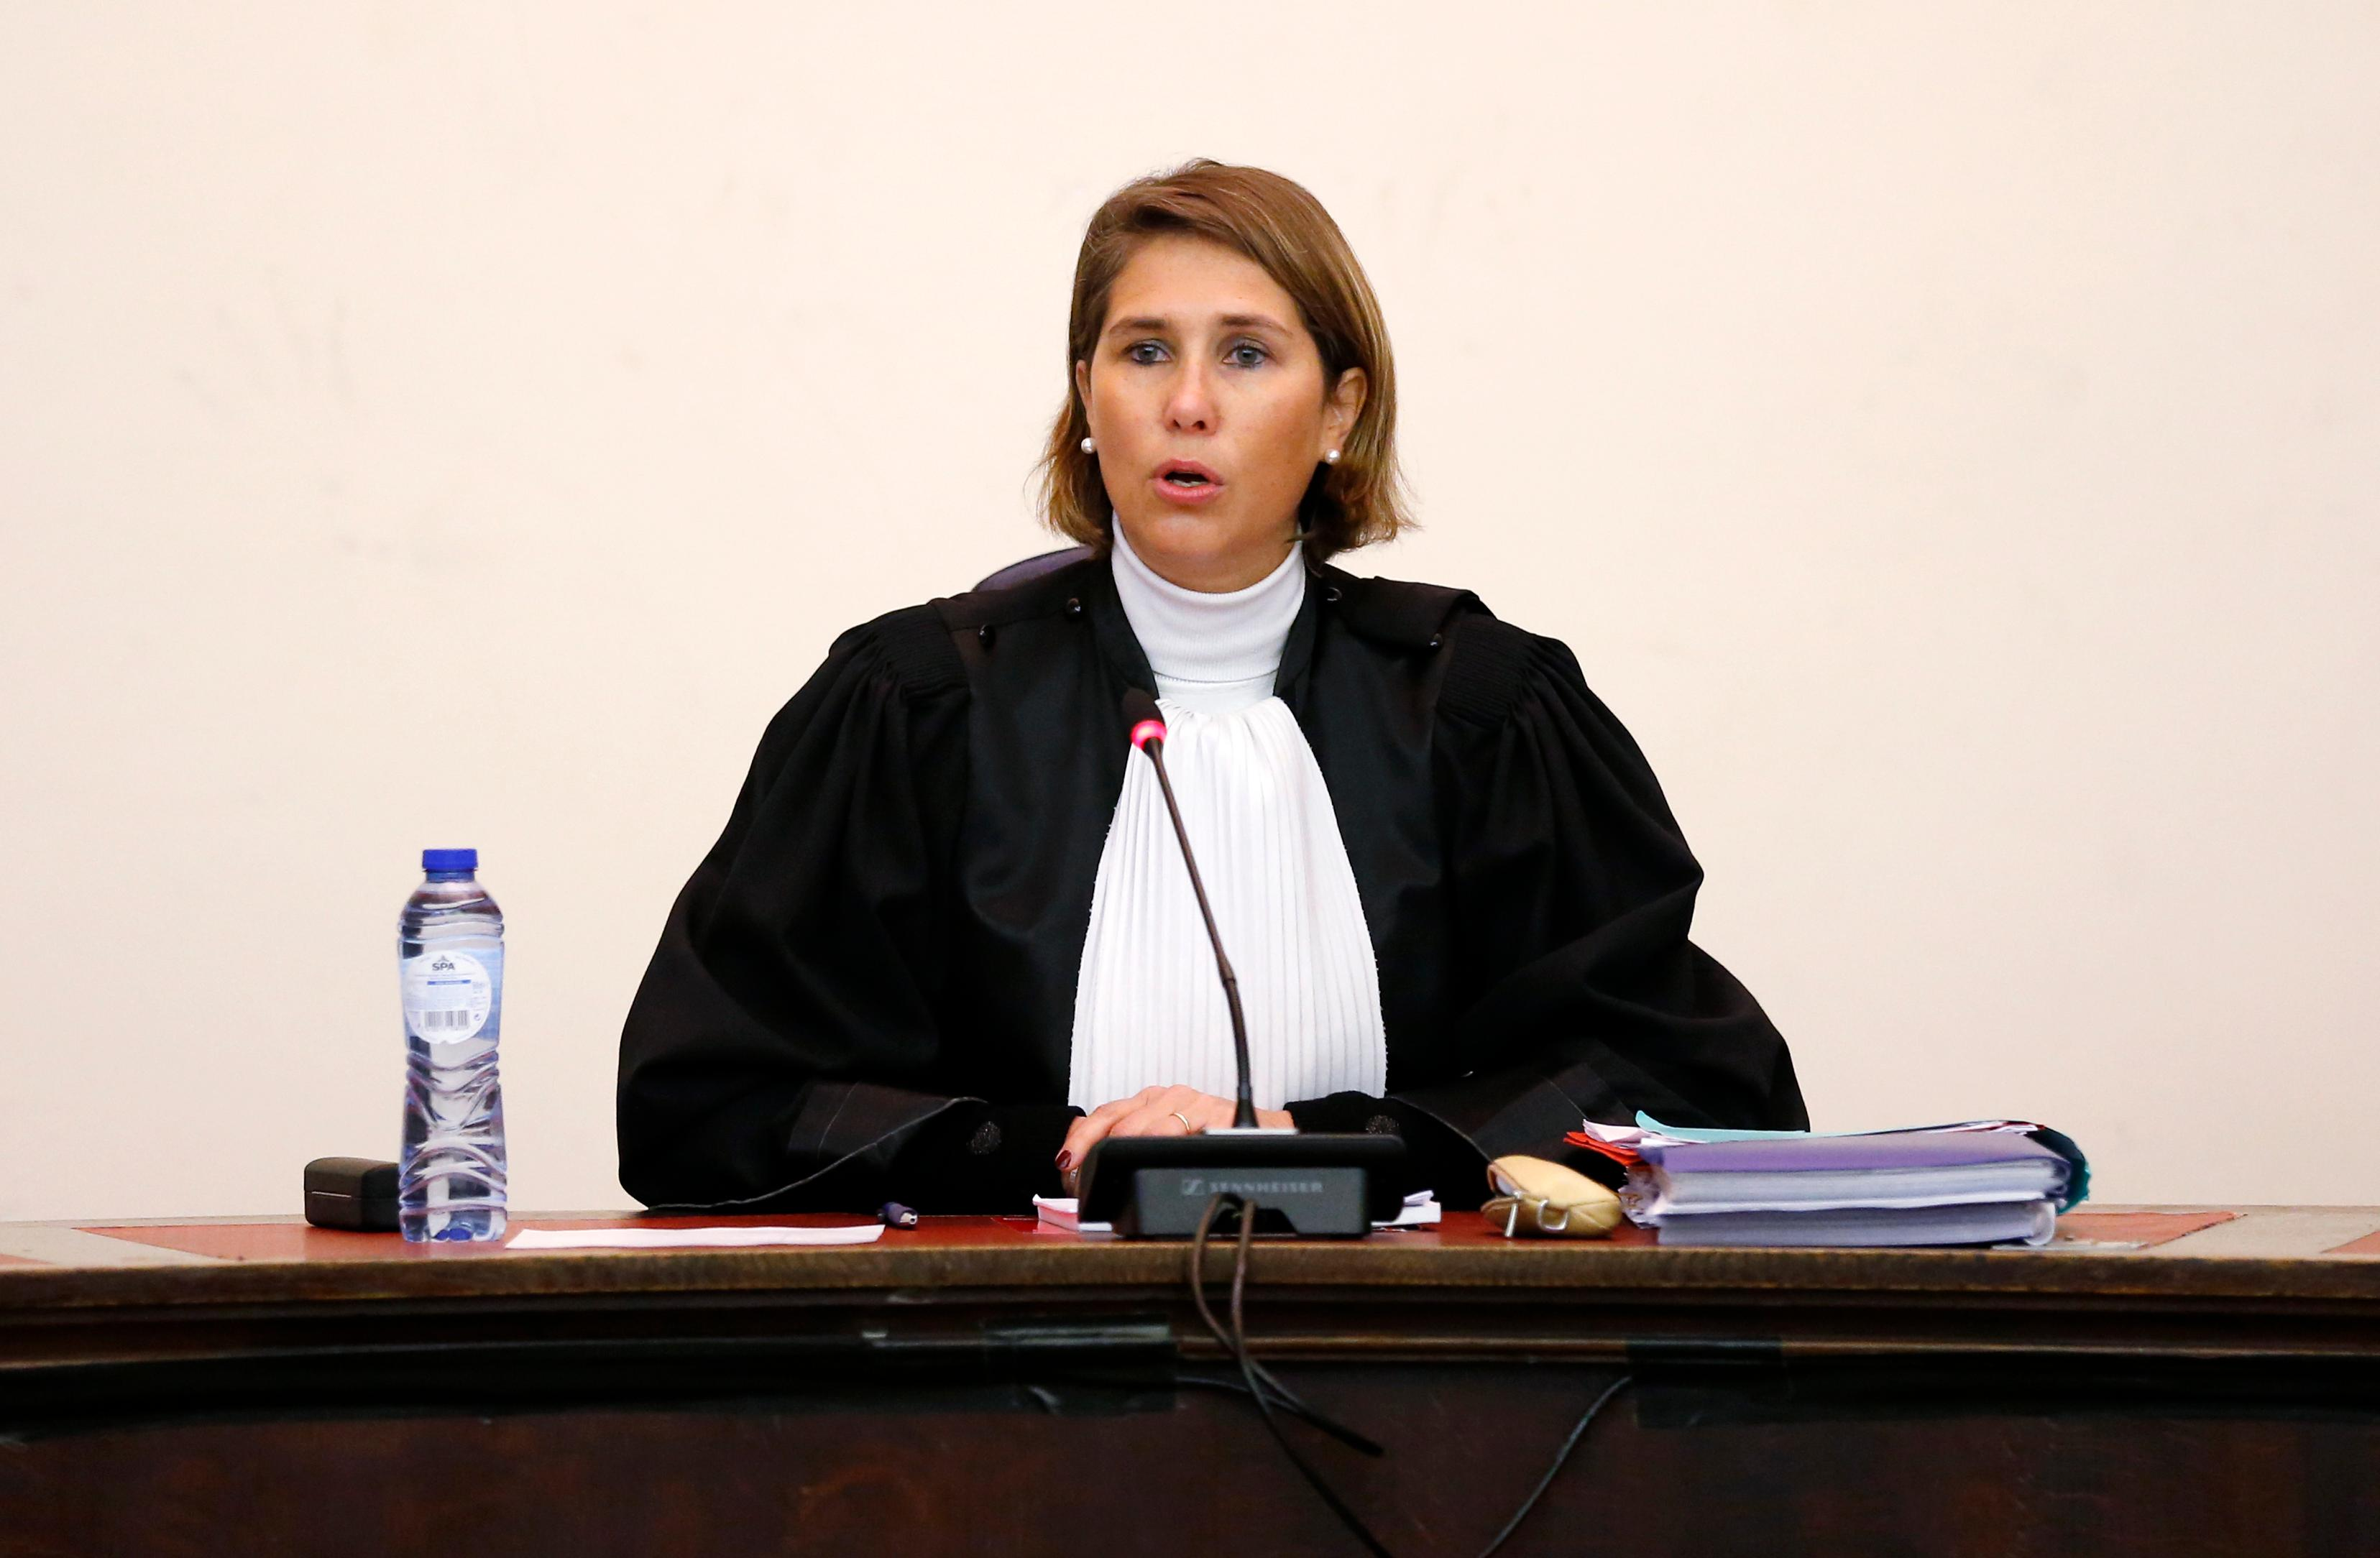 Belgian Judge Marie-France Keutgen presides over the second day of the trial of Salah Abdeslam and Soufiane Ayari at the Brussels Justice Palace in Brussels on Thursday, Feb. 8, 2018. (Francois Lenoir, Pool Photo via AP)